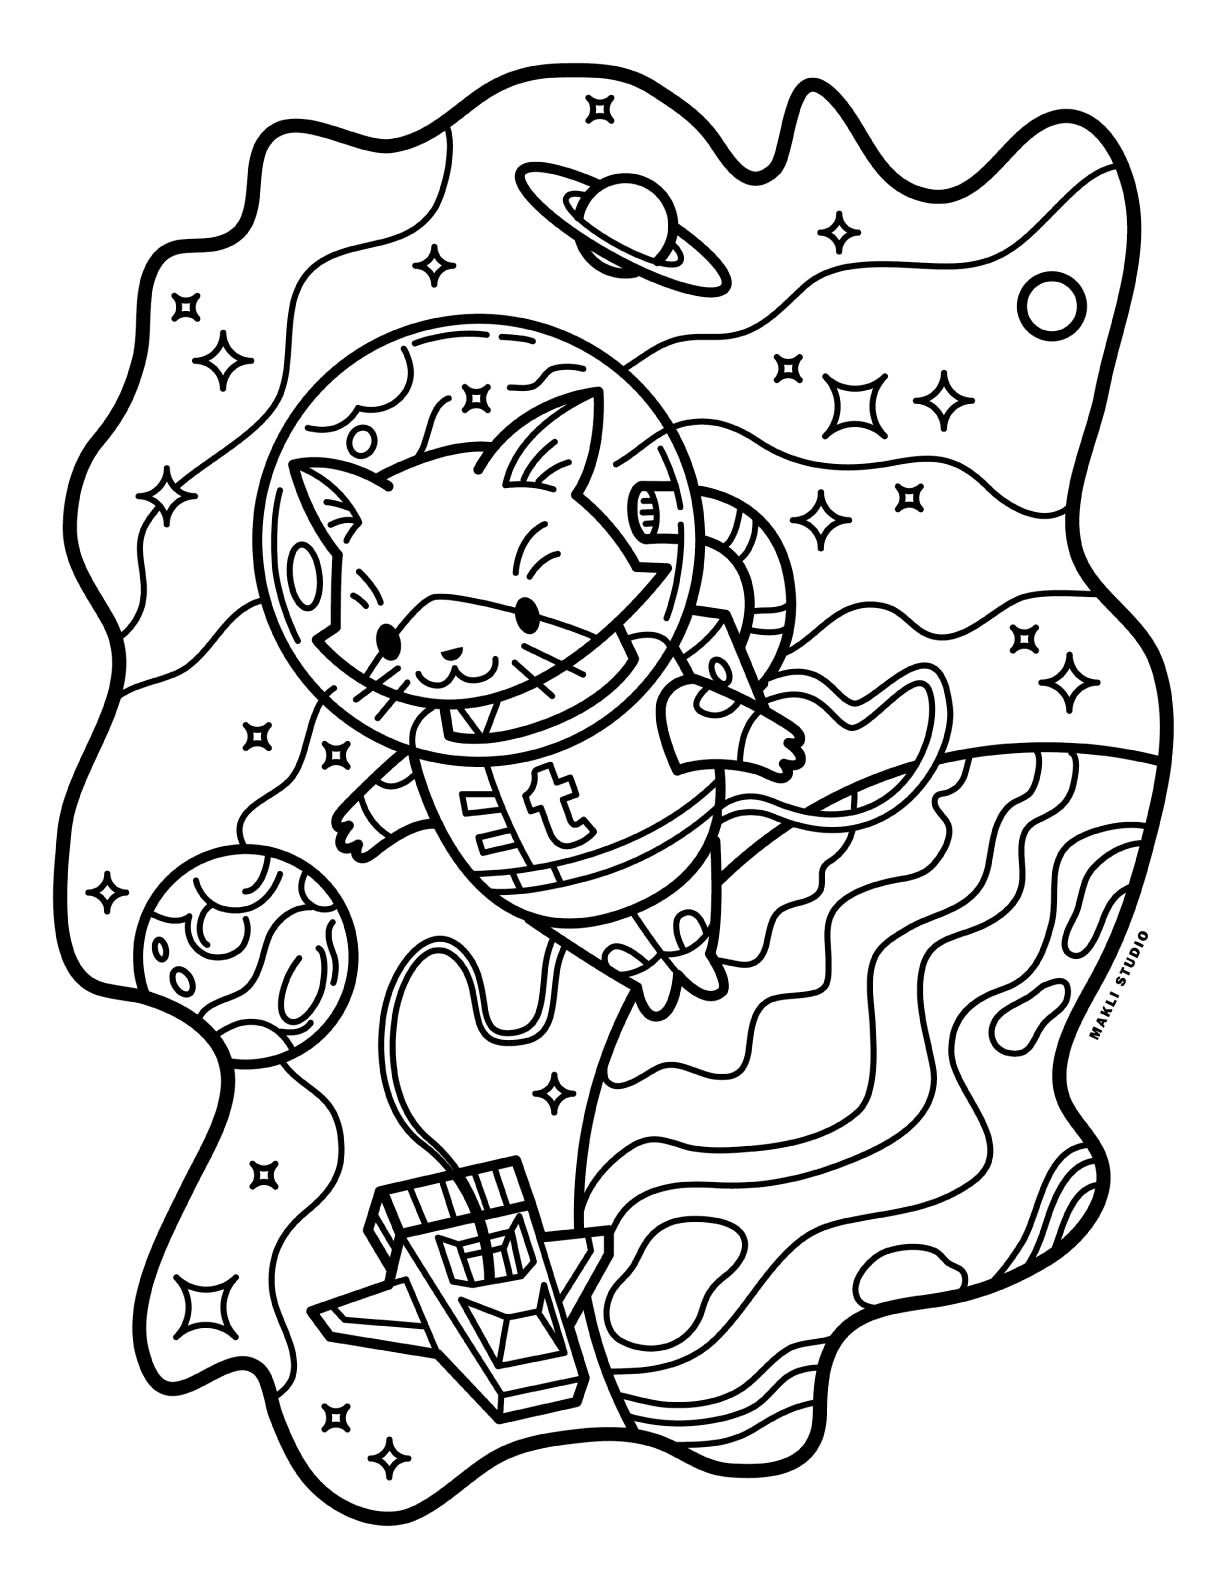 Image Result For Coloring Pages Space Tumblr